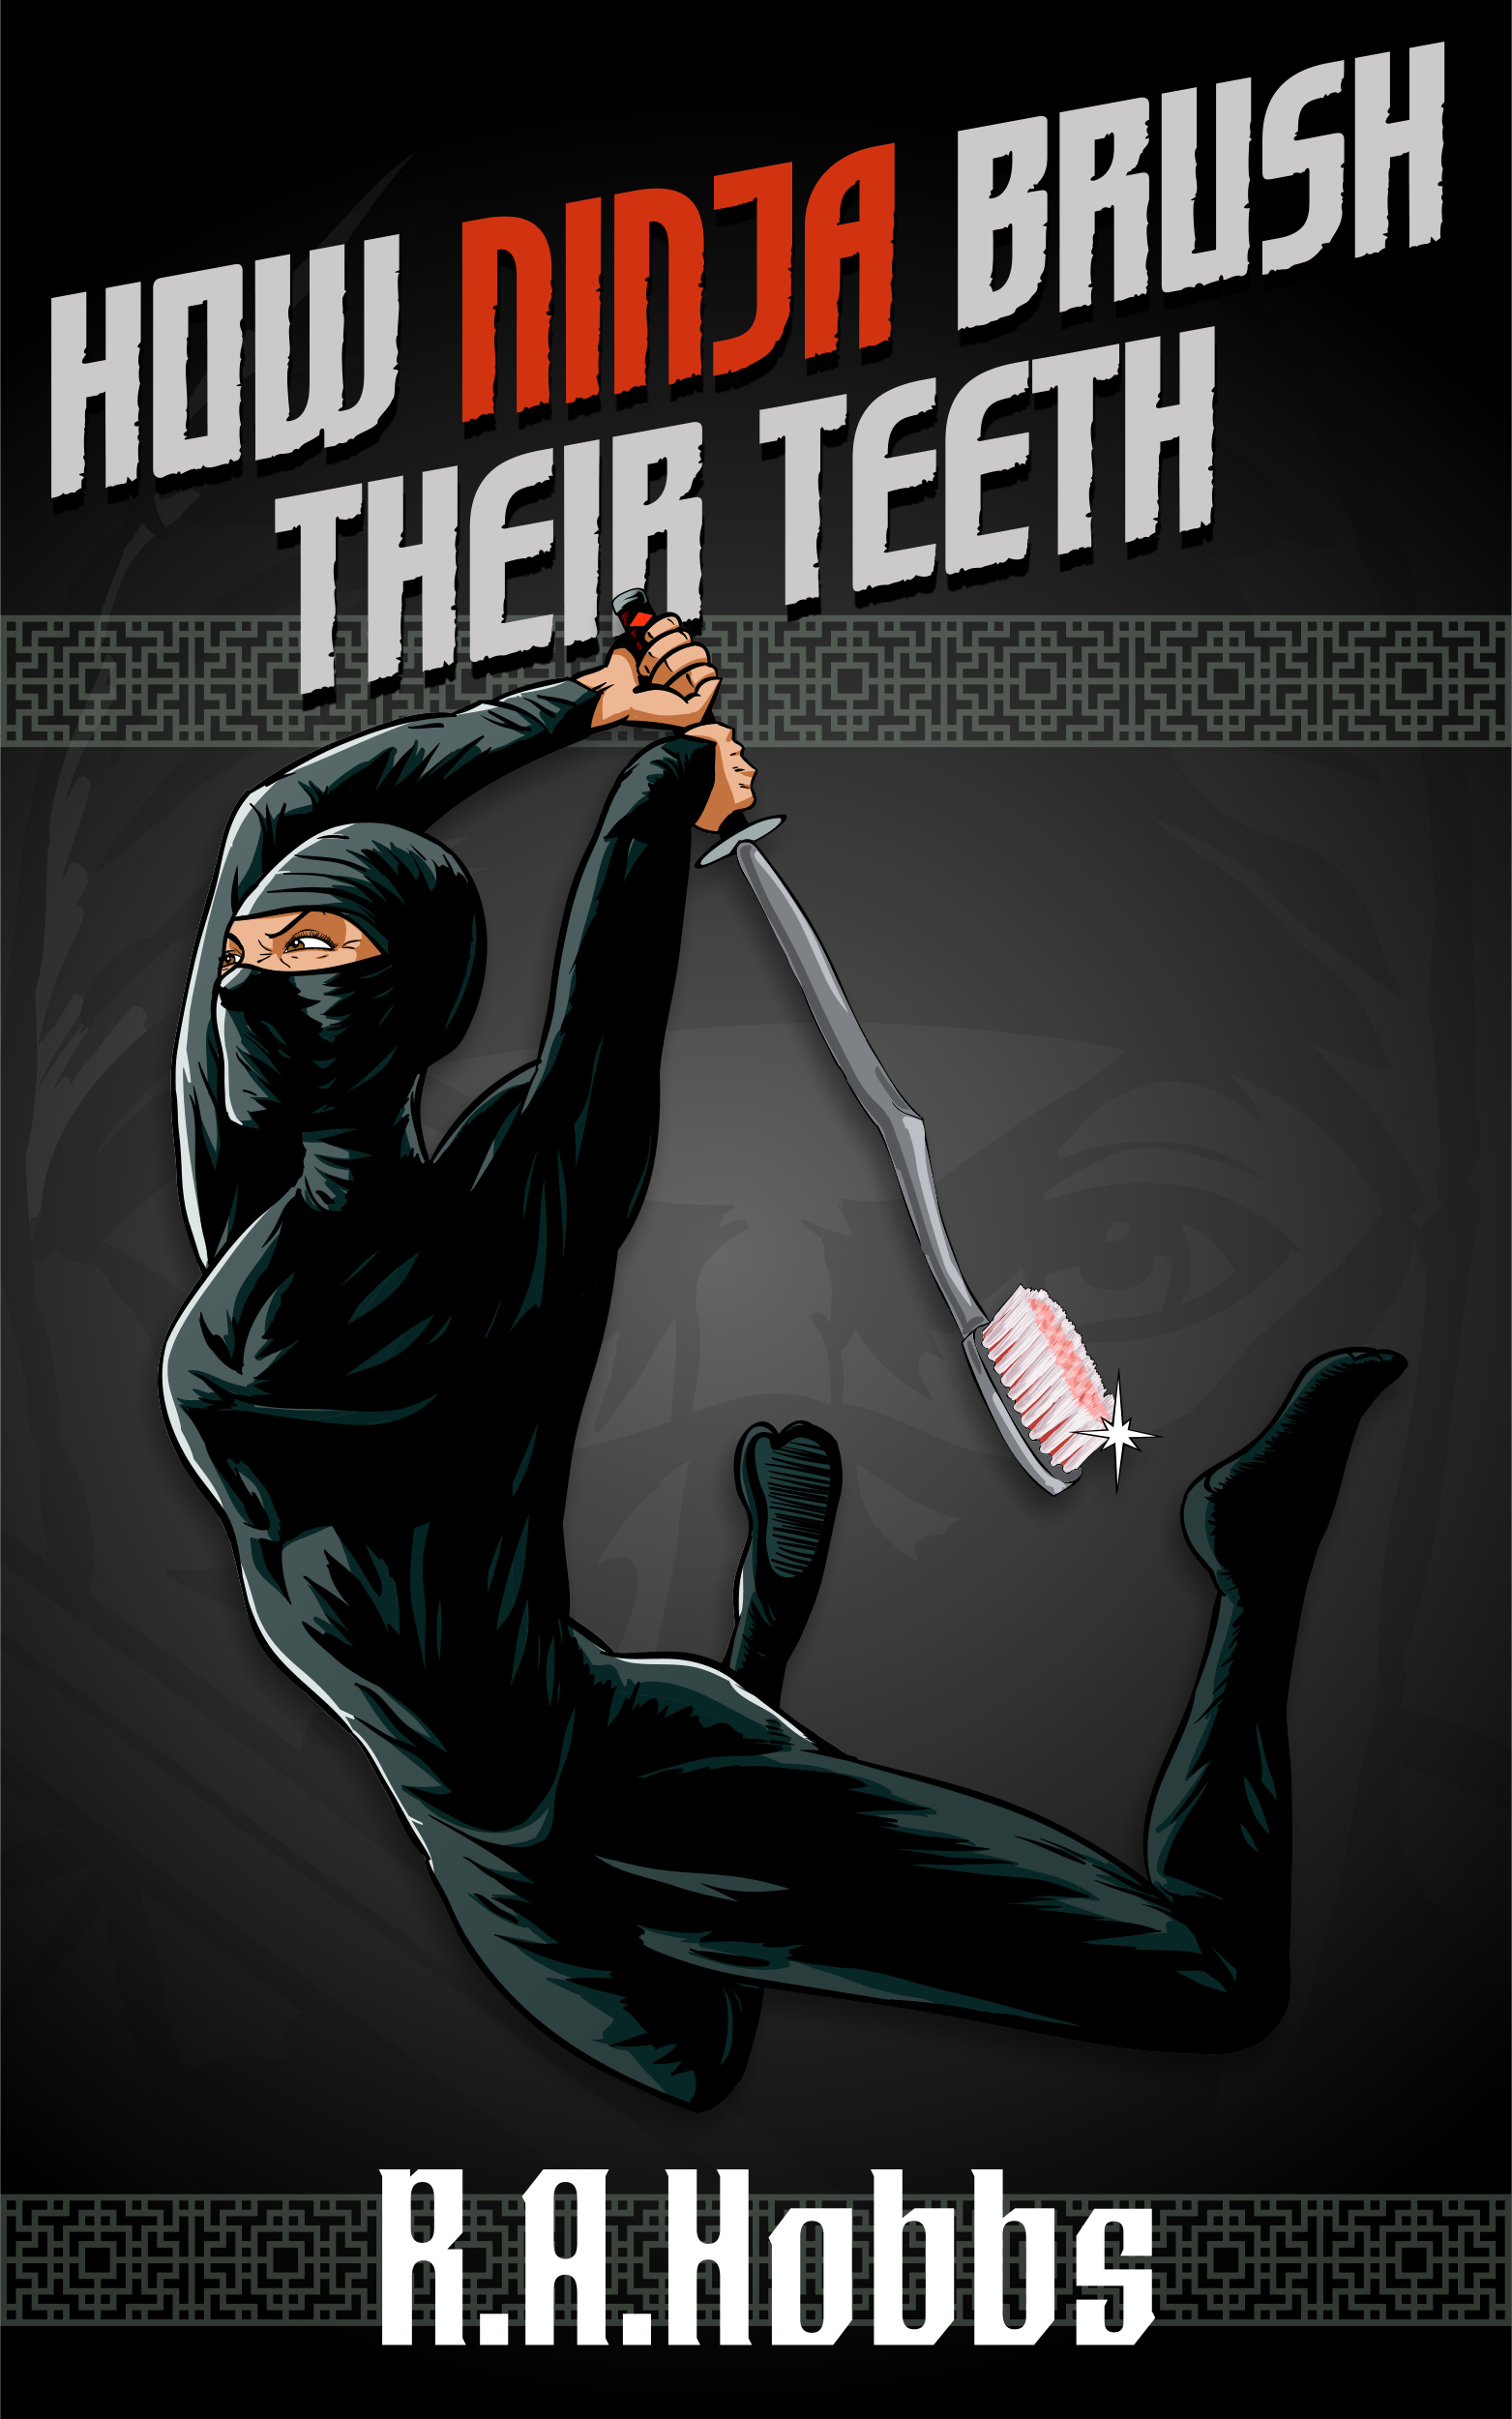 How Ninja Brush Their Teeth